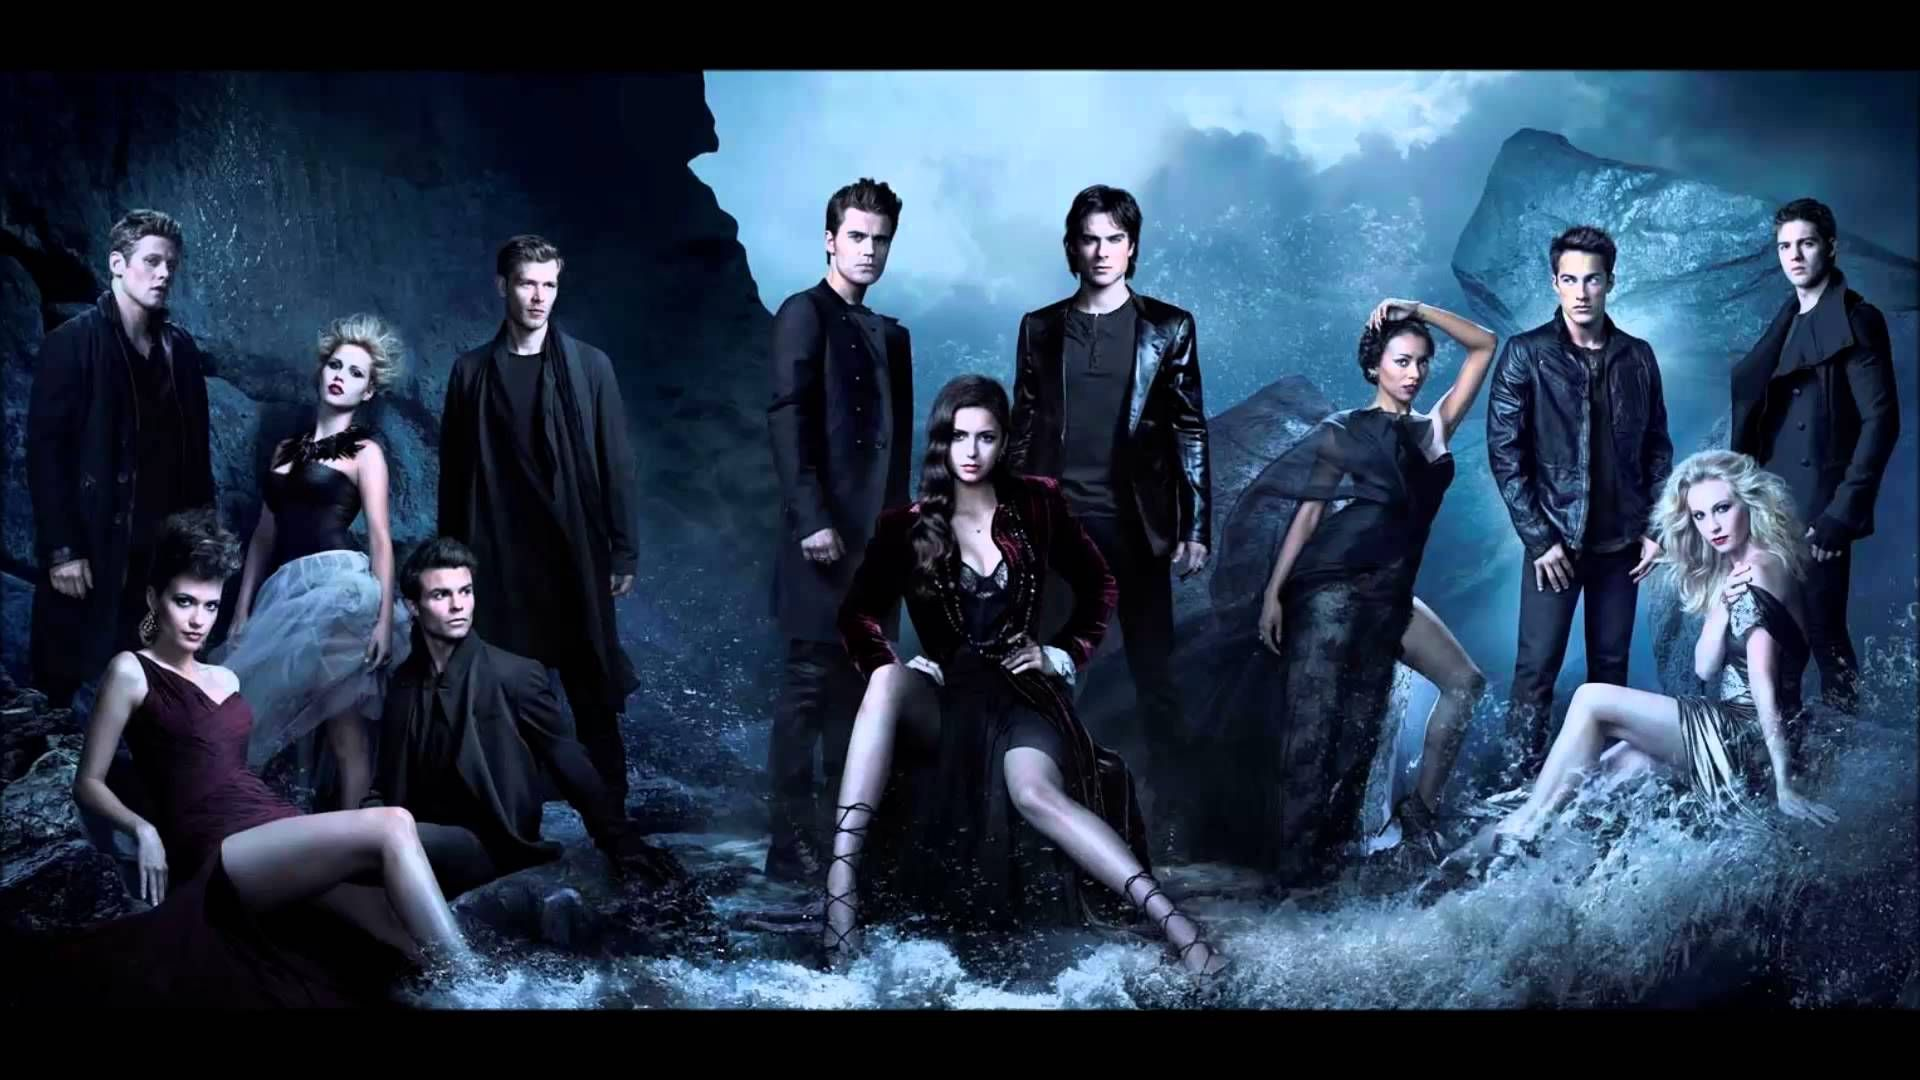 Vampire Diaries 4x12 Cary Brothers If You Were Here Vampire Diaries Wallpaper Vampire Diaries Vampire Diaries Seasons